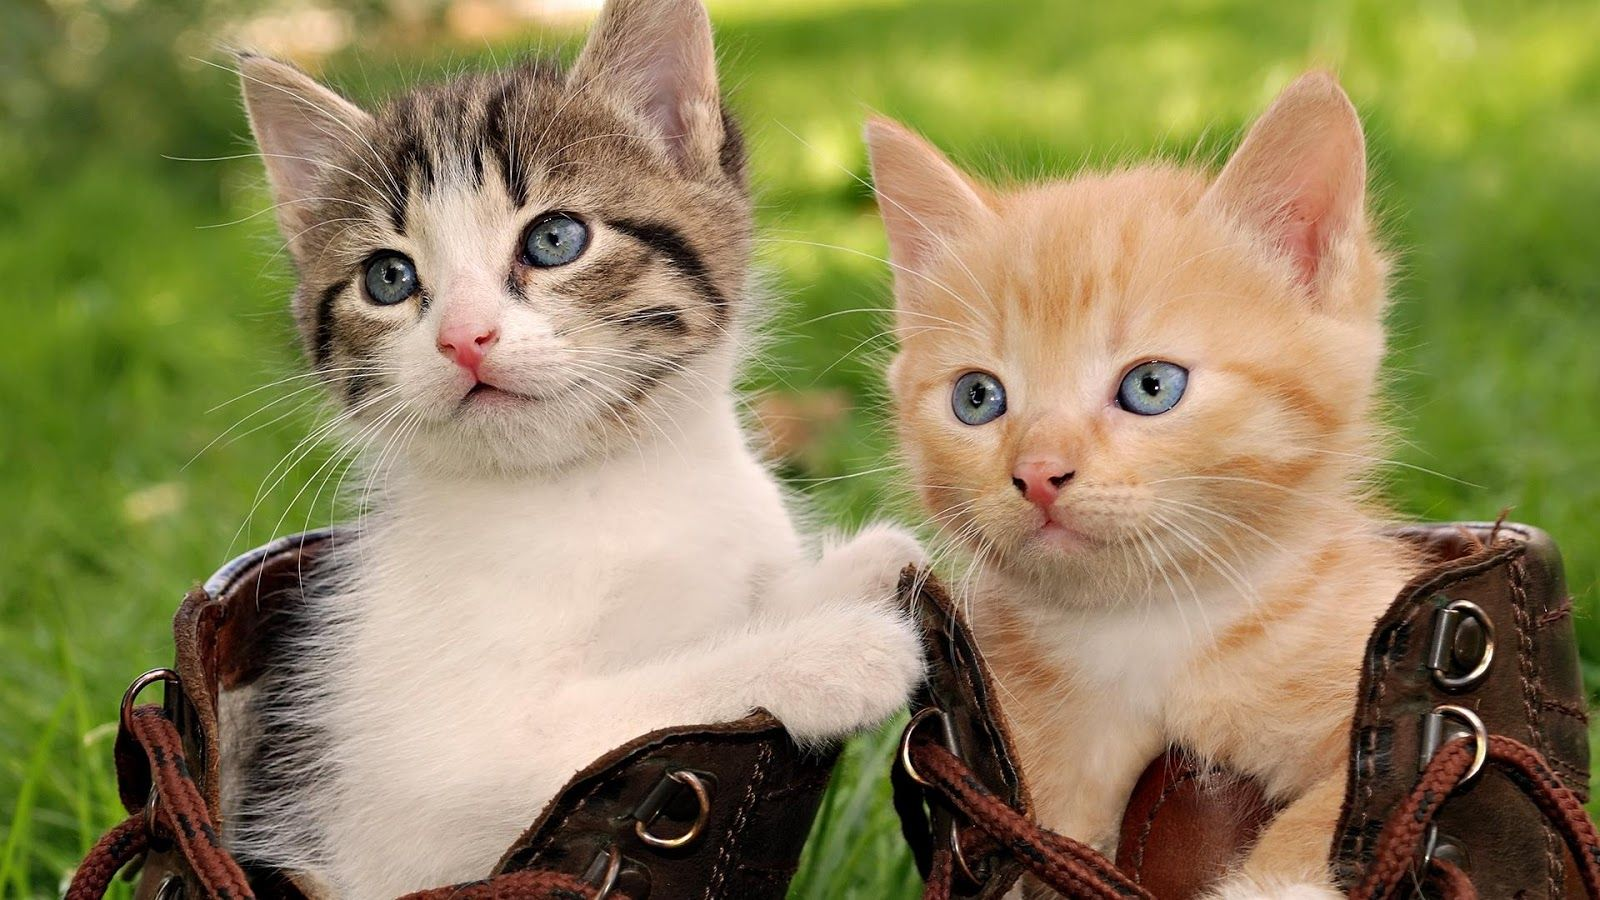 1080p Hd Cat Images Hd Wallpaper High Quality Desktop Iphone And